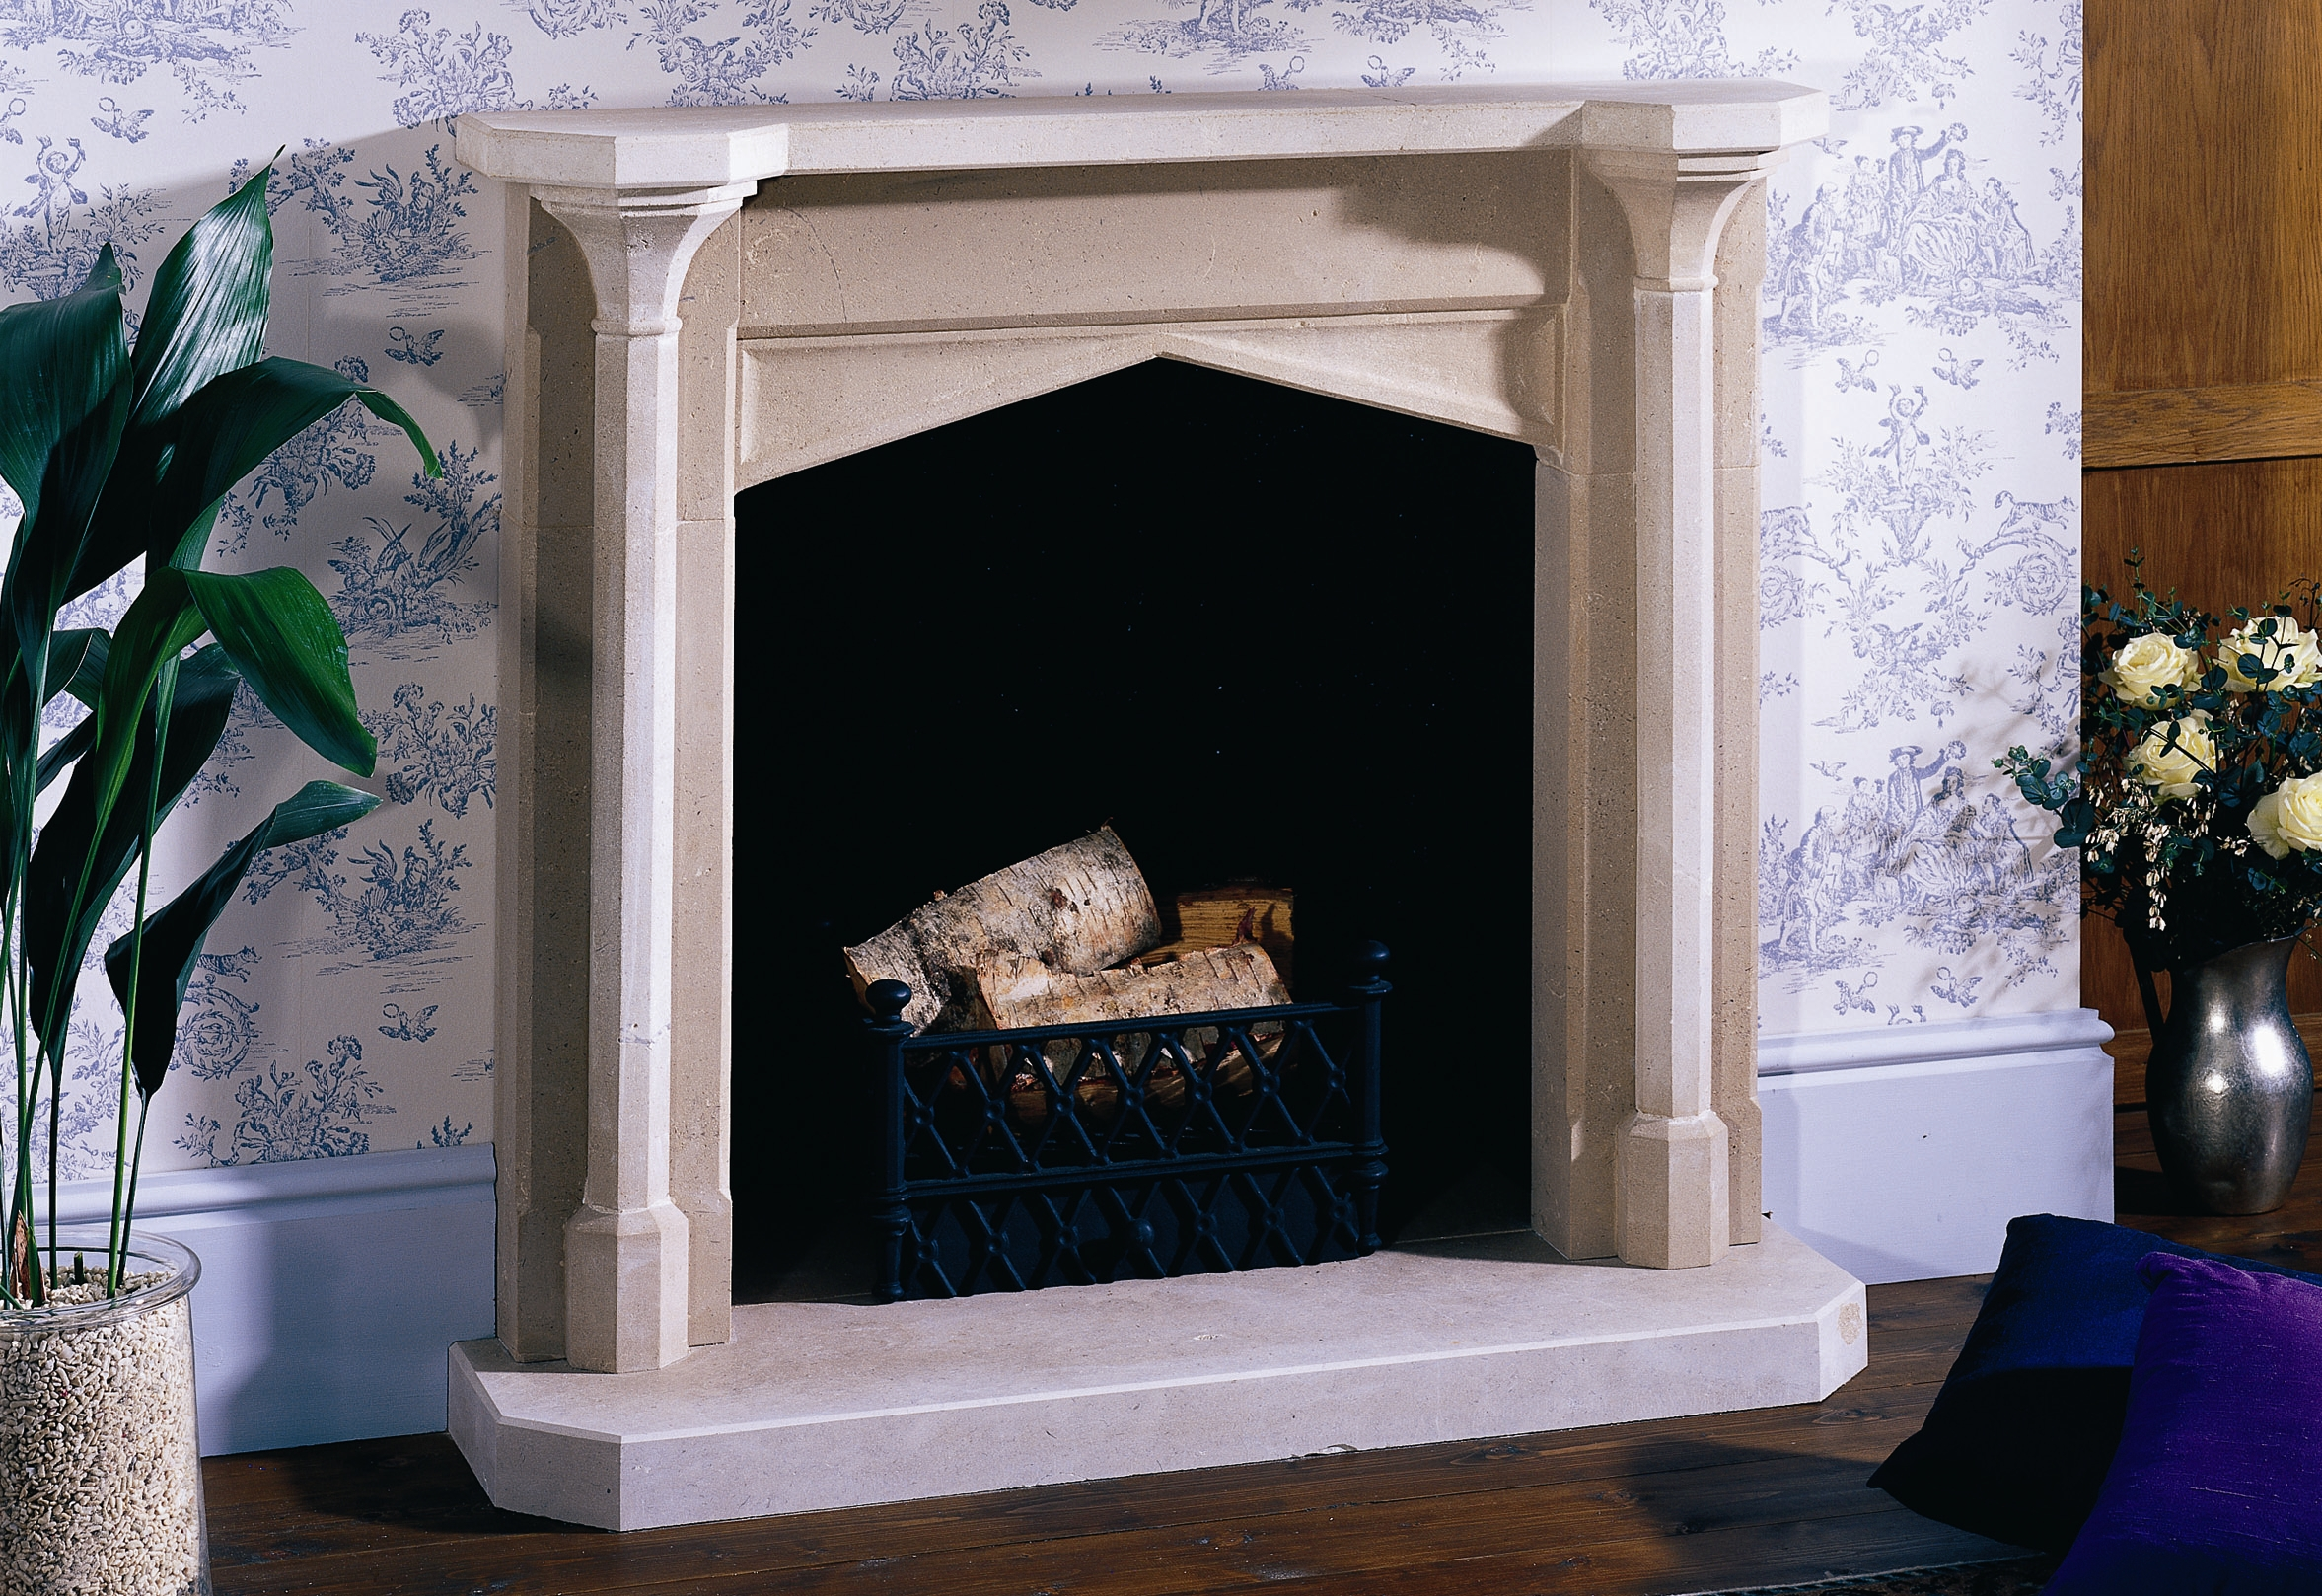 8. Simple Gothic Portland stone fireplace with black rendered chamber – Warwickshire